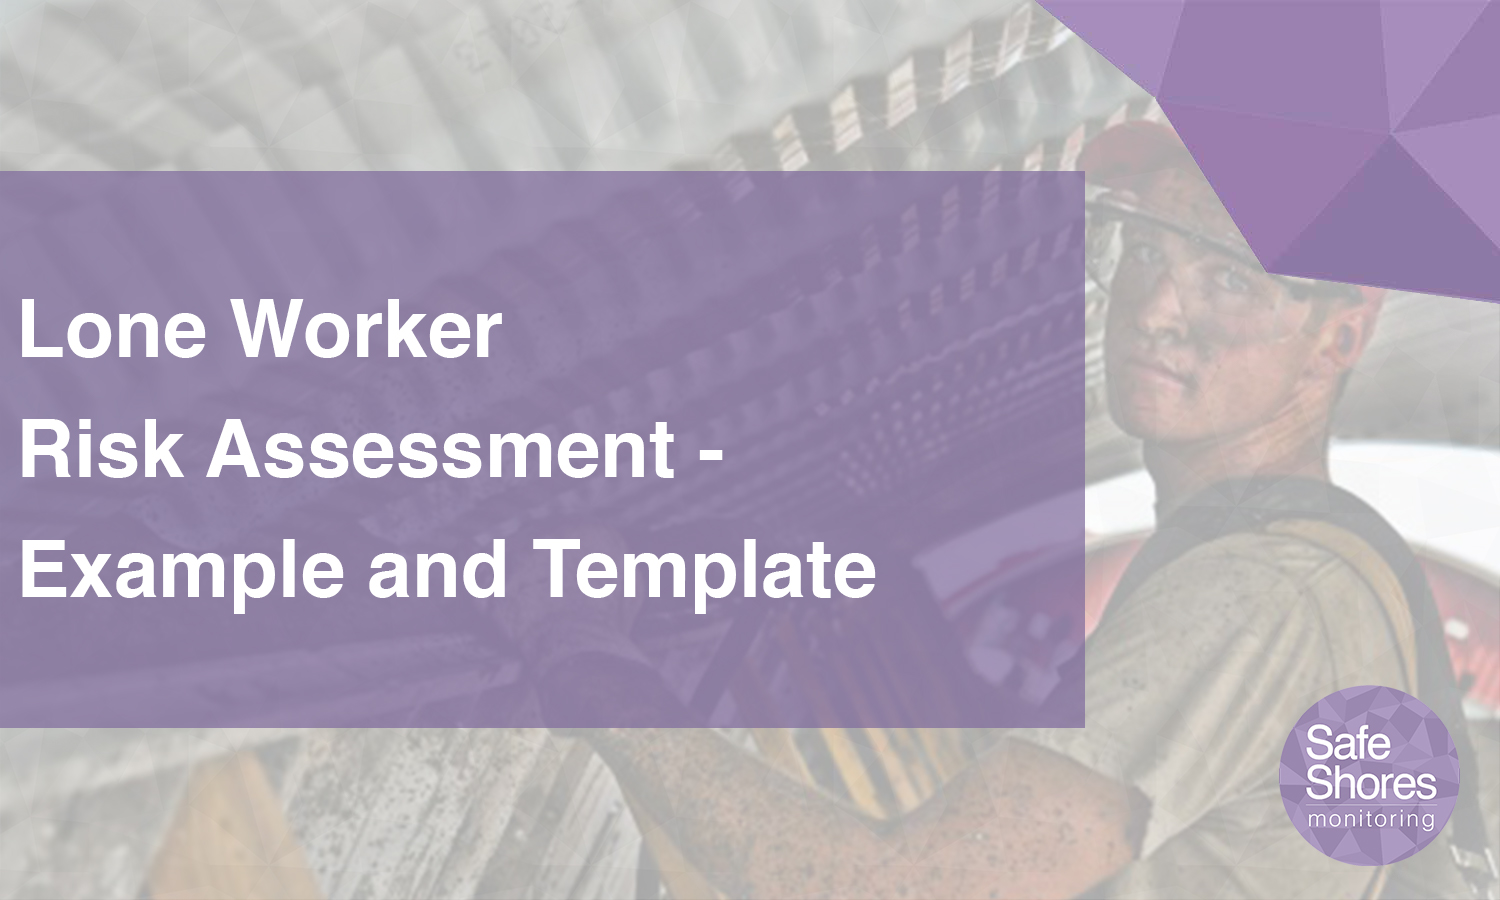 Lone Worker Risk Assessment – Example